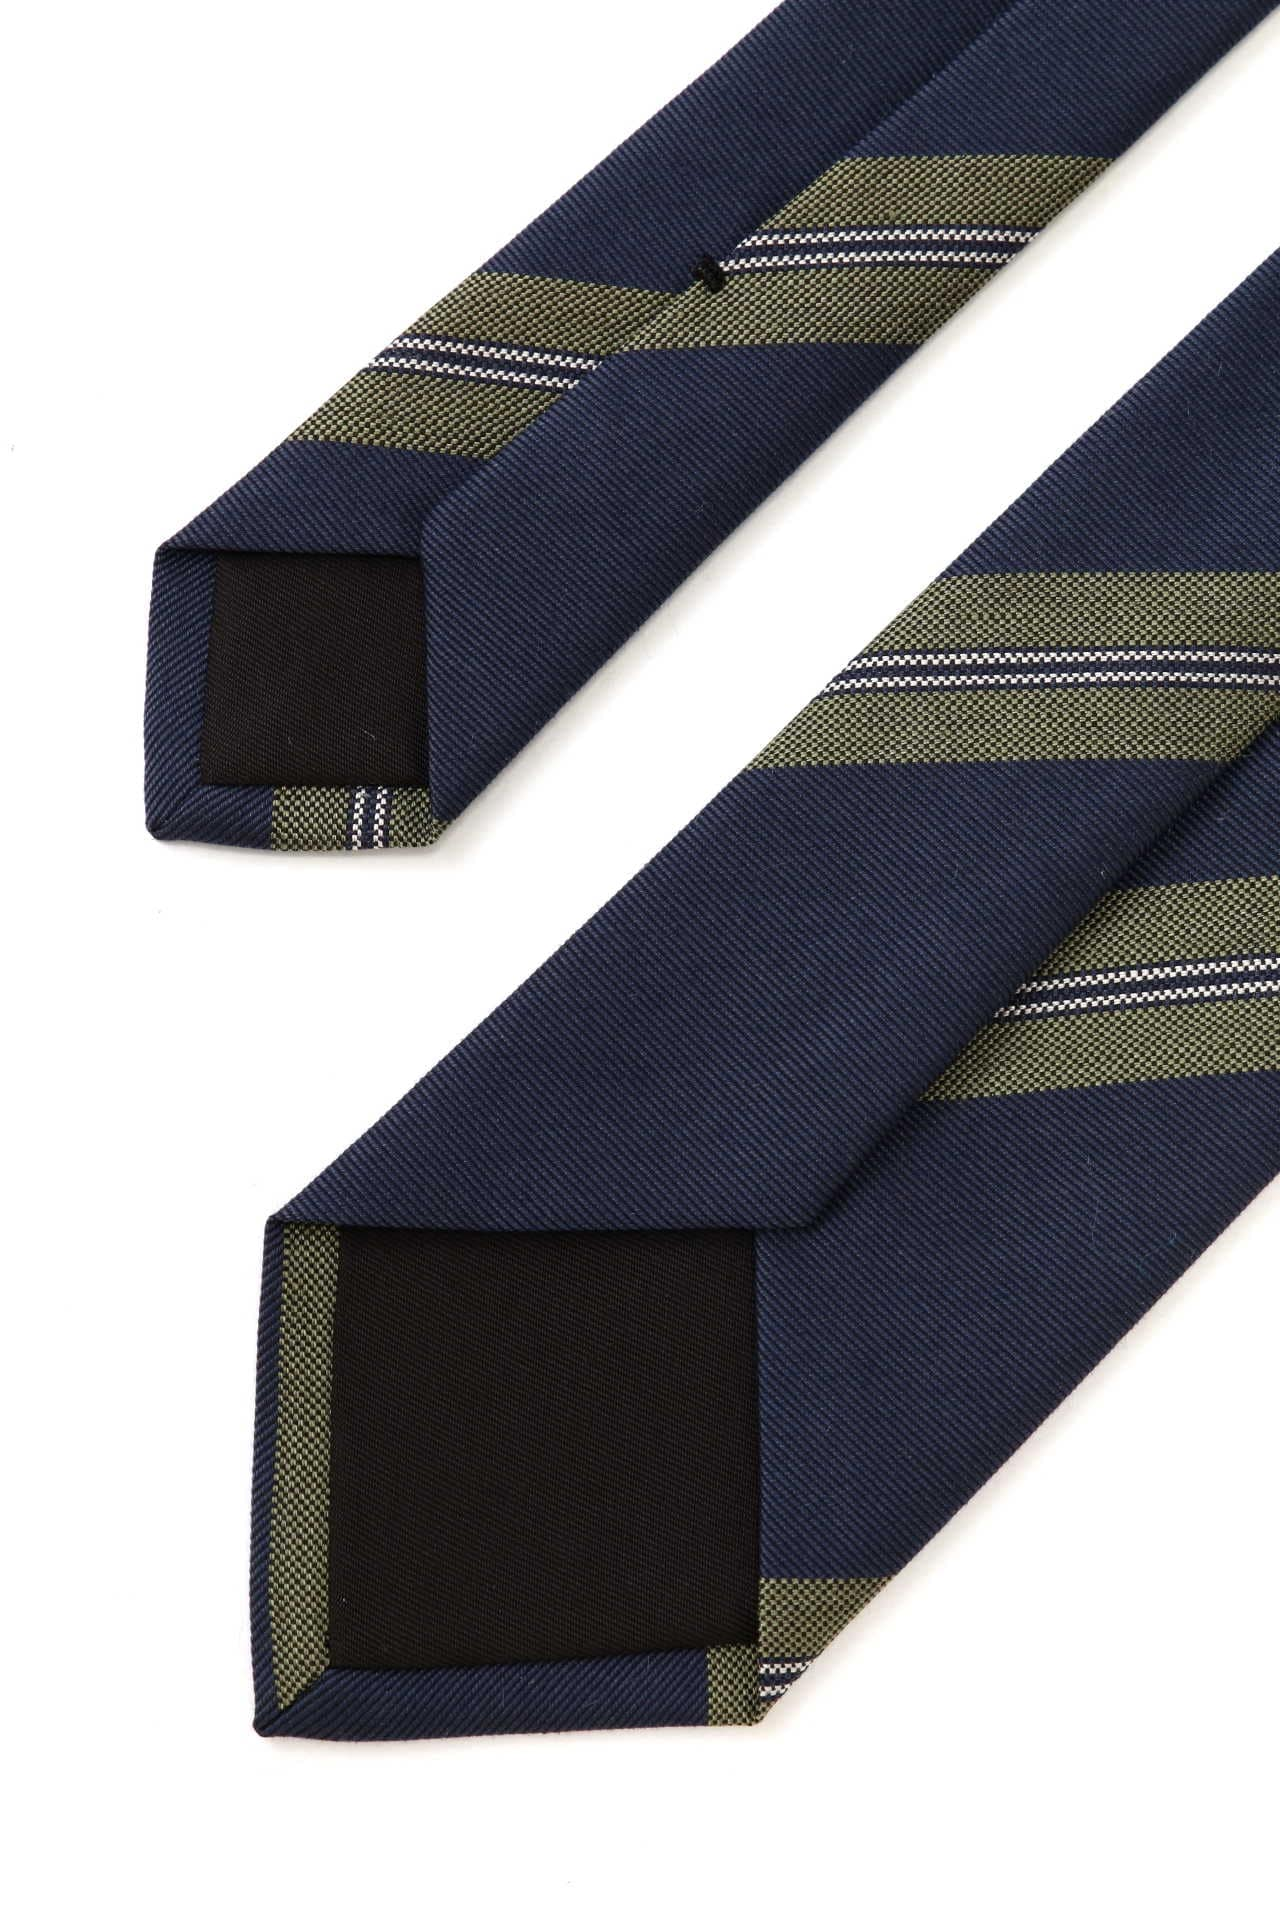 ALTERNATE STRIPE TIE6